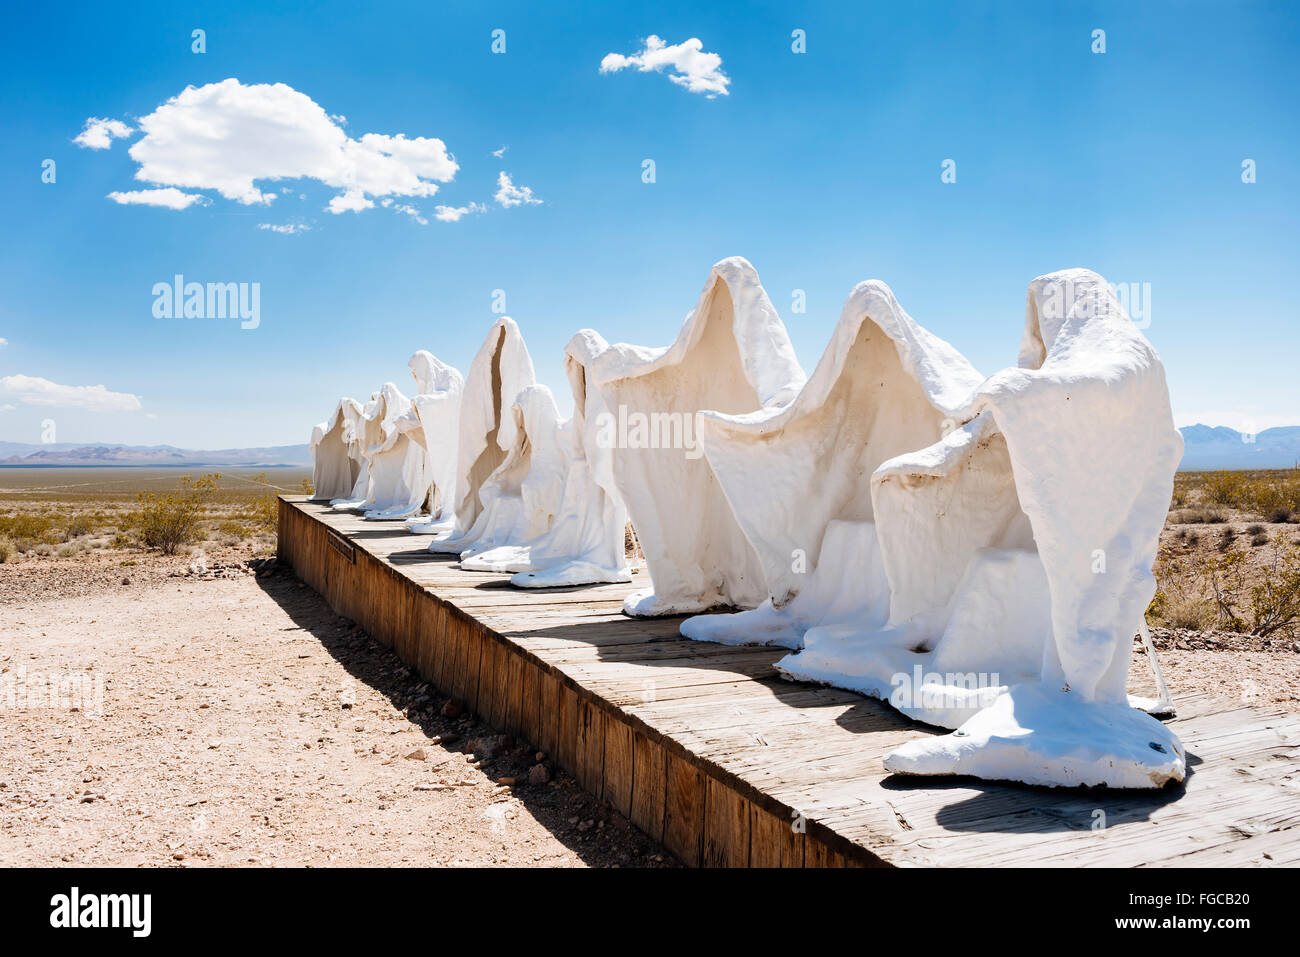 A sculpture by the Belgian artist Albert Szukalski called 'The Last Supper' in Goldwell Open Air Museum, - Stock Image